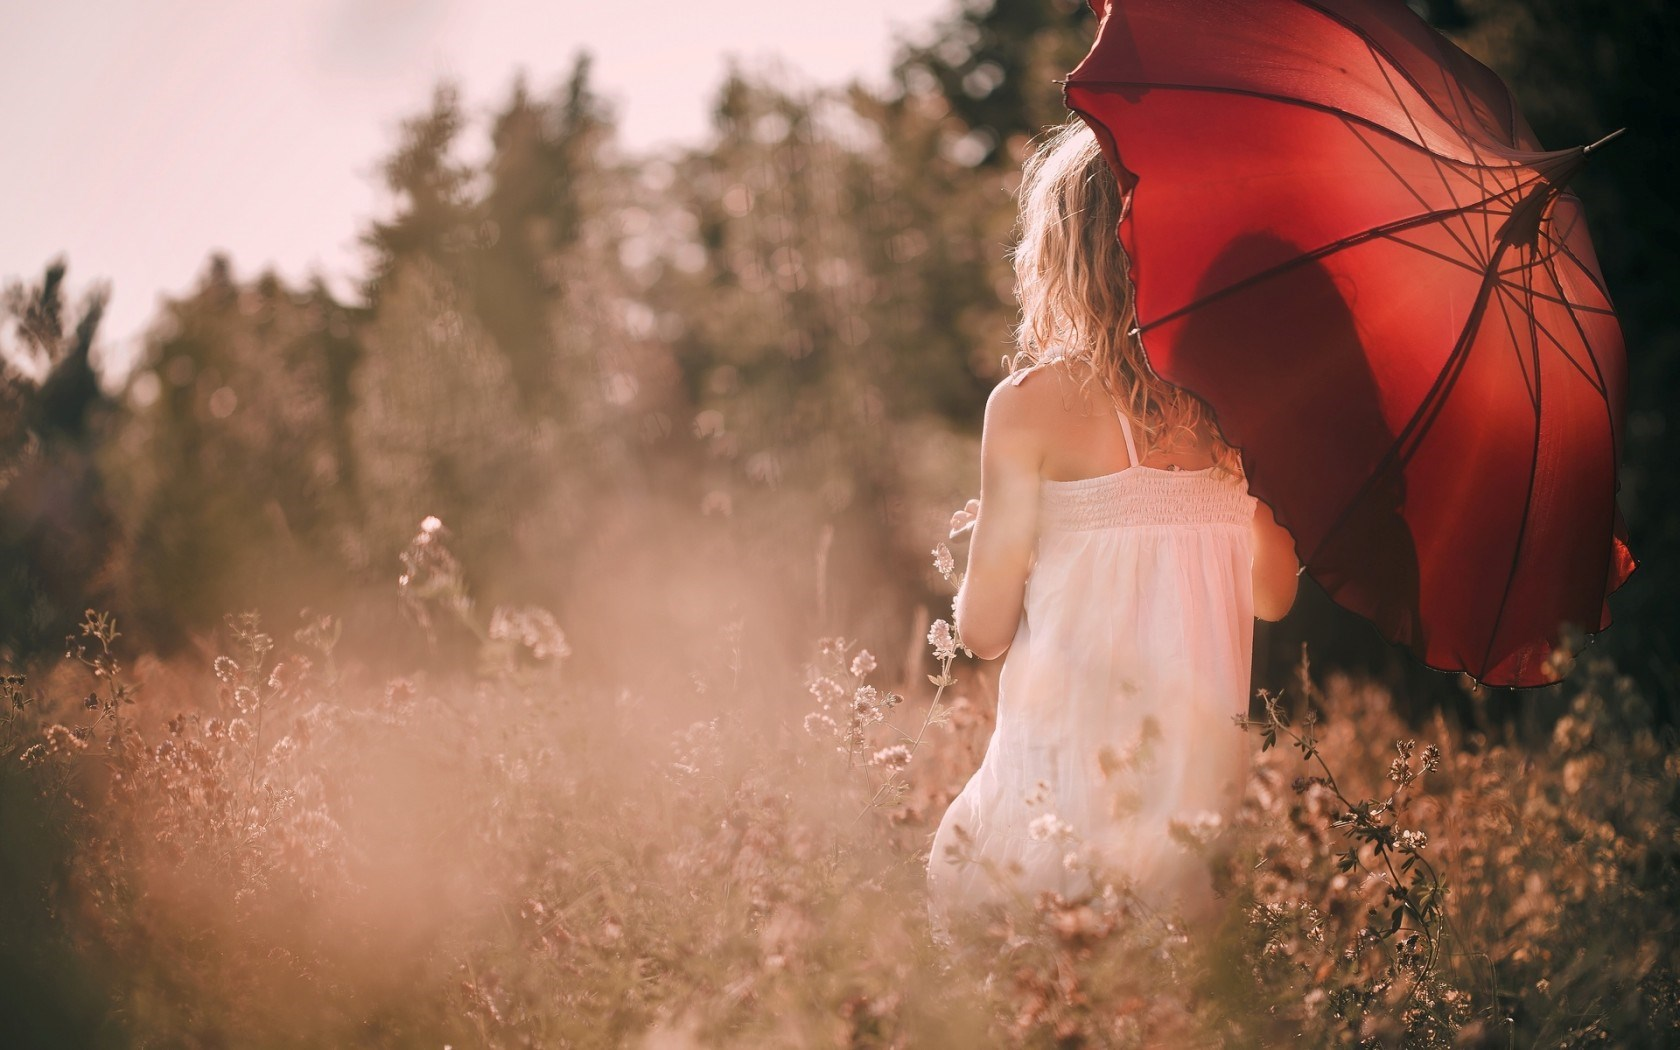 Mood Girl Umbrella Red Nature